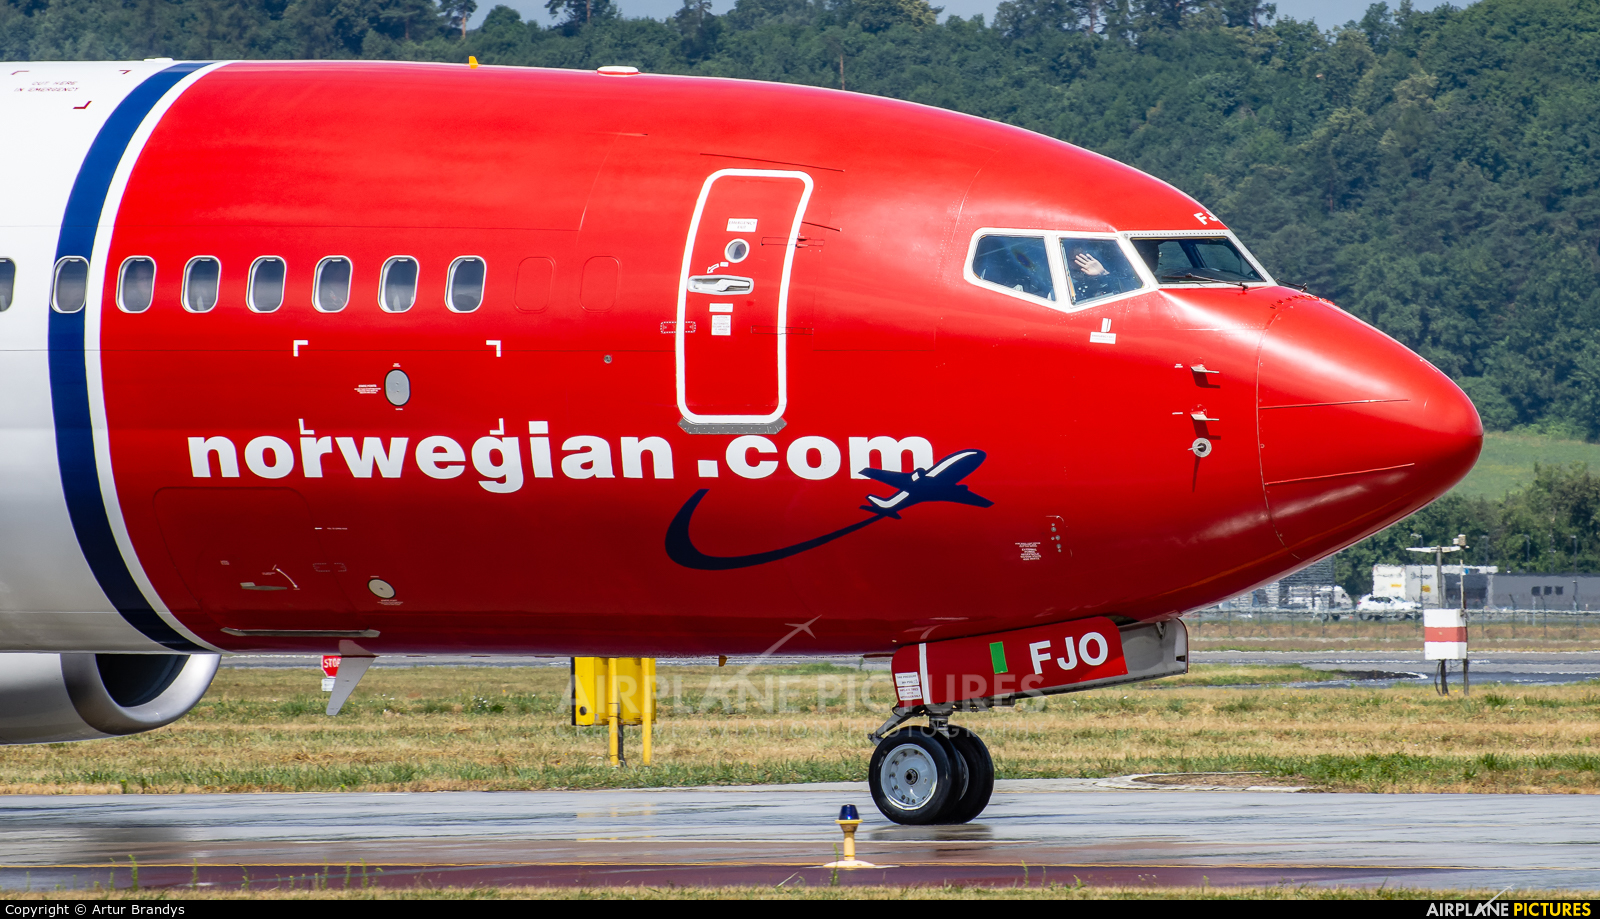 Norwegian Air International EI-FJO aircraft at Kraków - John Paul II Intl